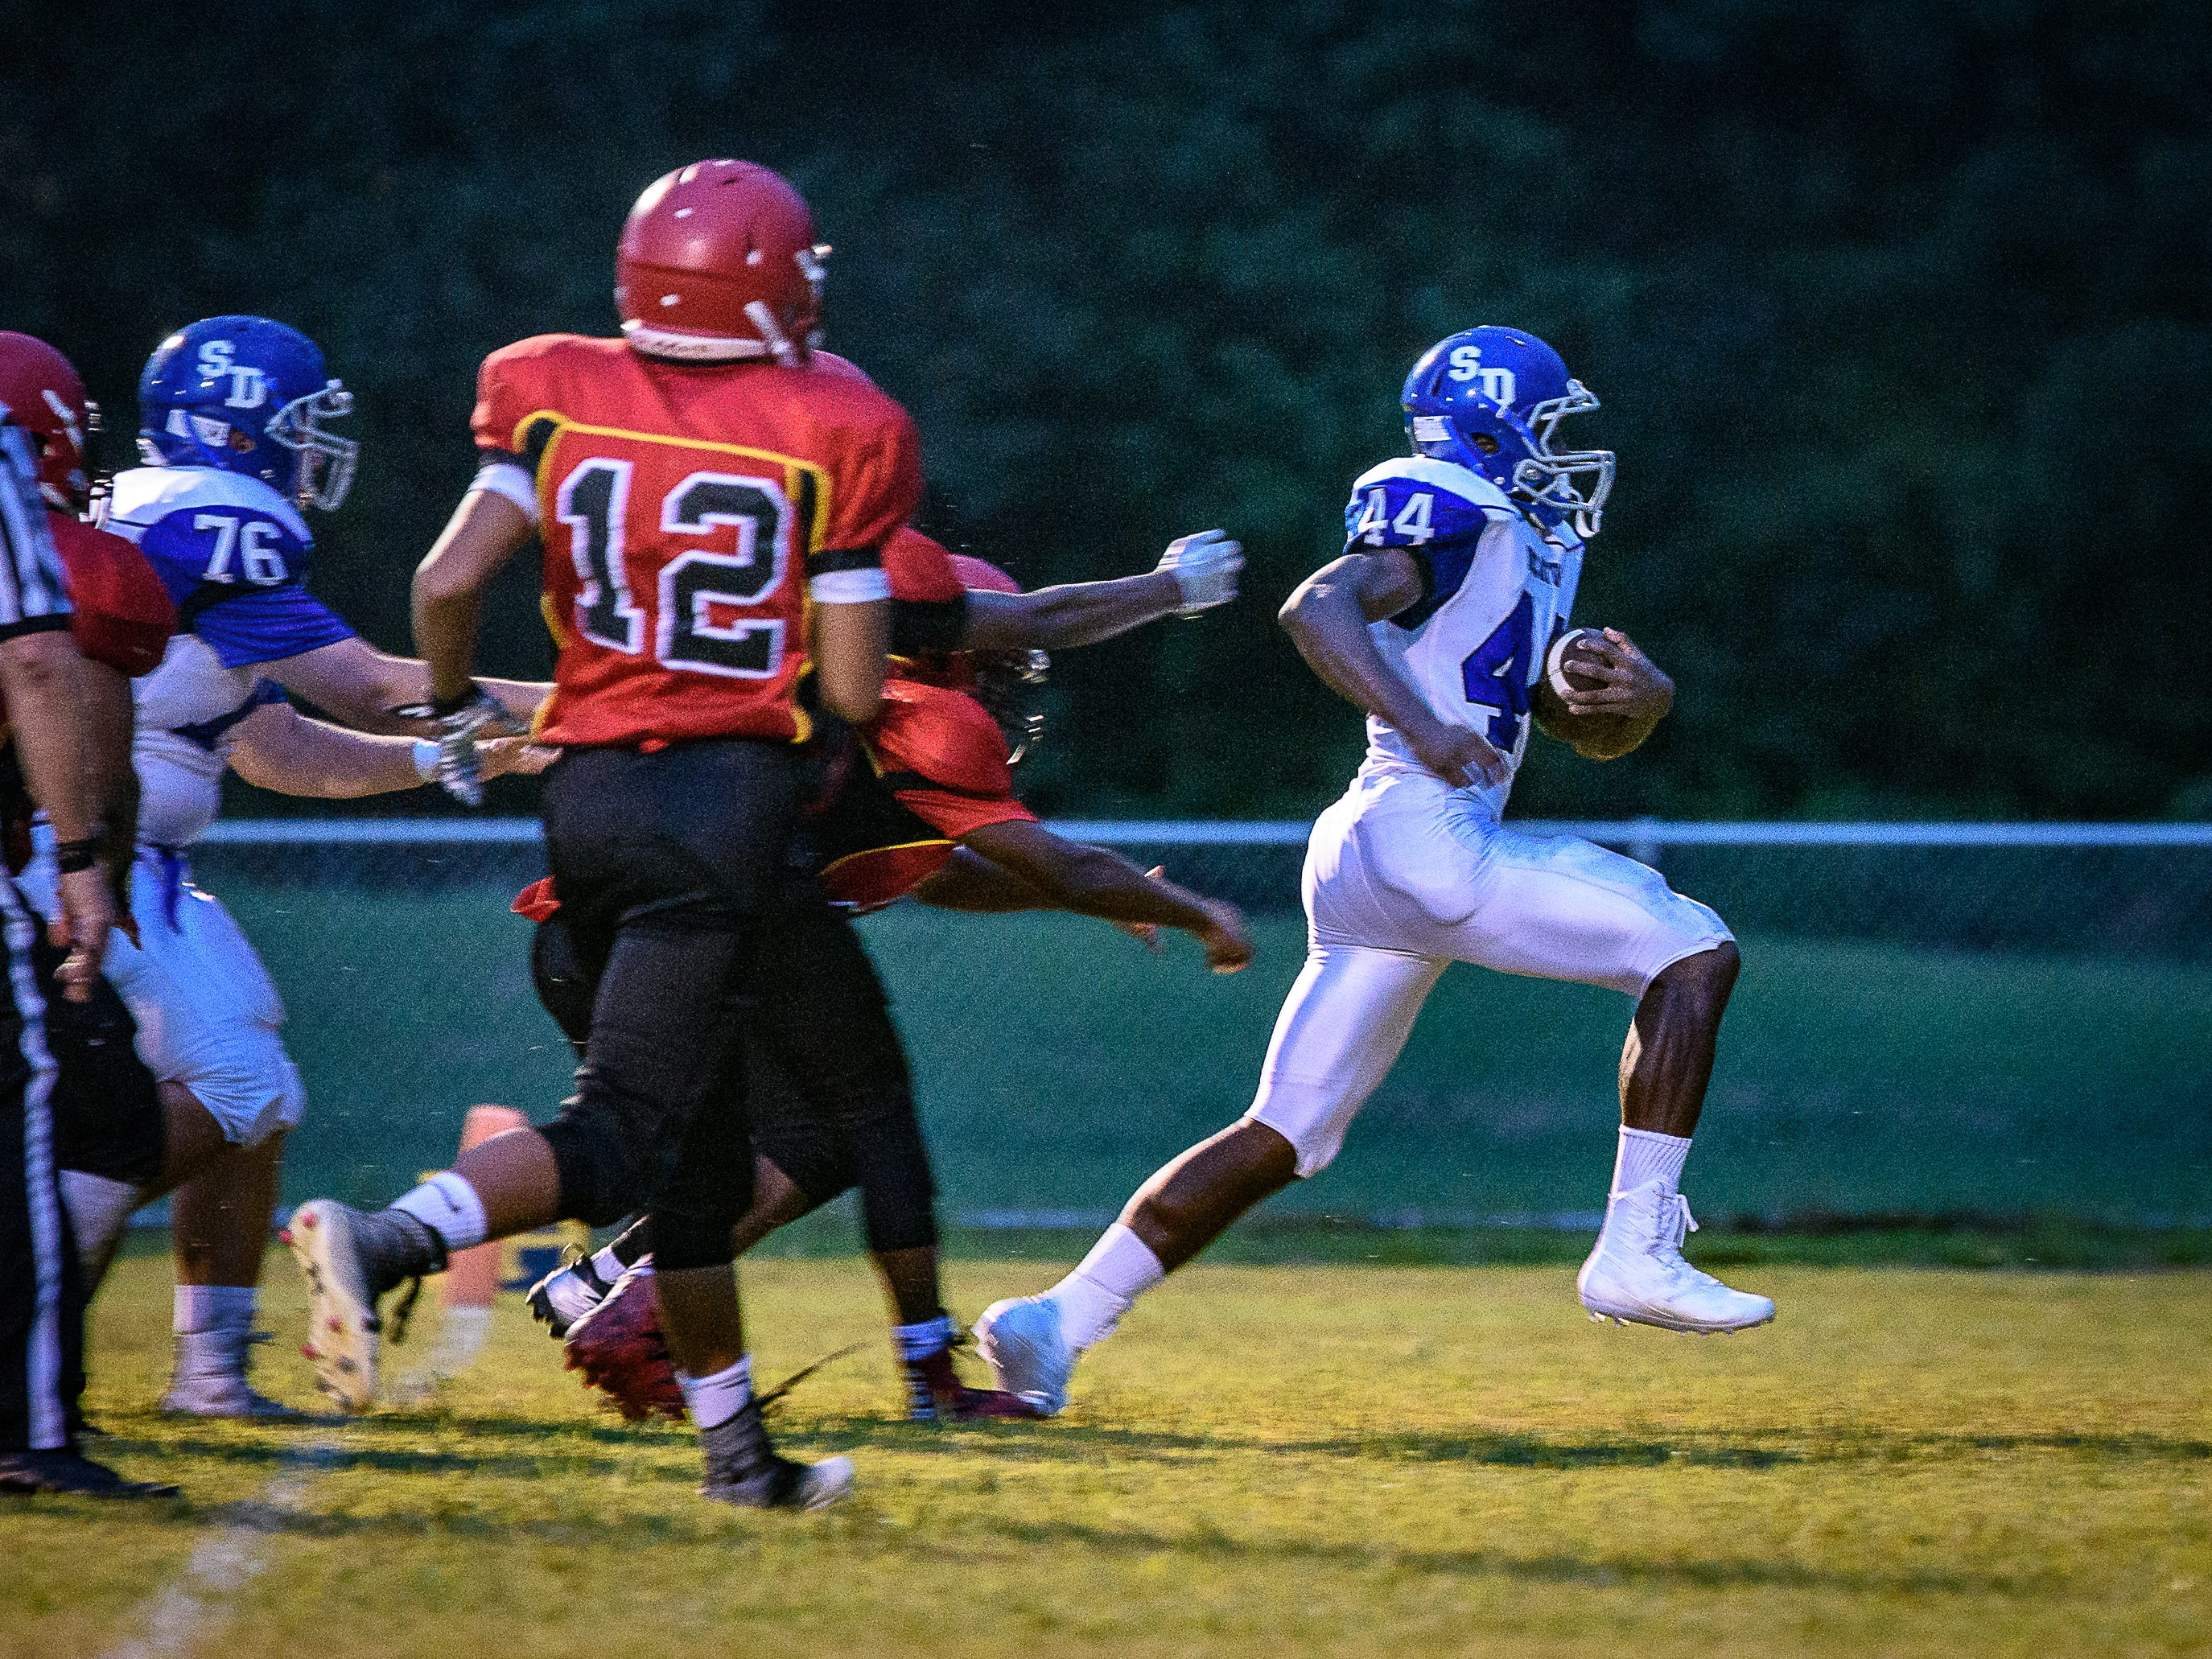 Decatur's London Drummond gets the ball into the end zone for a touchdown.